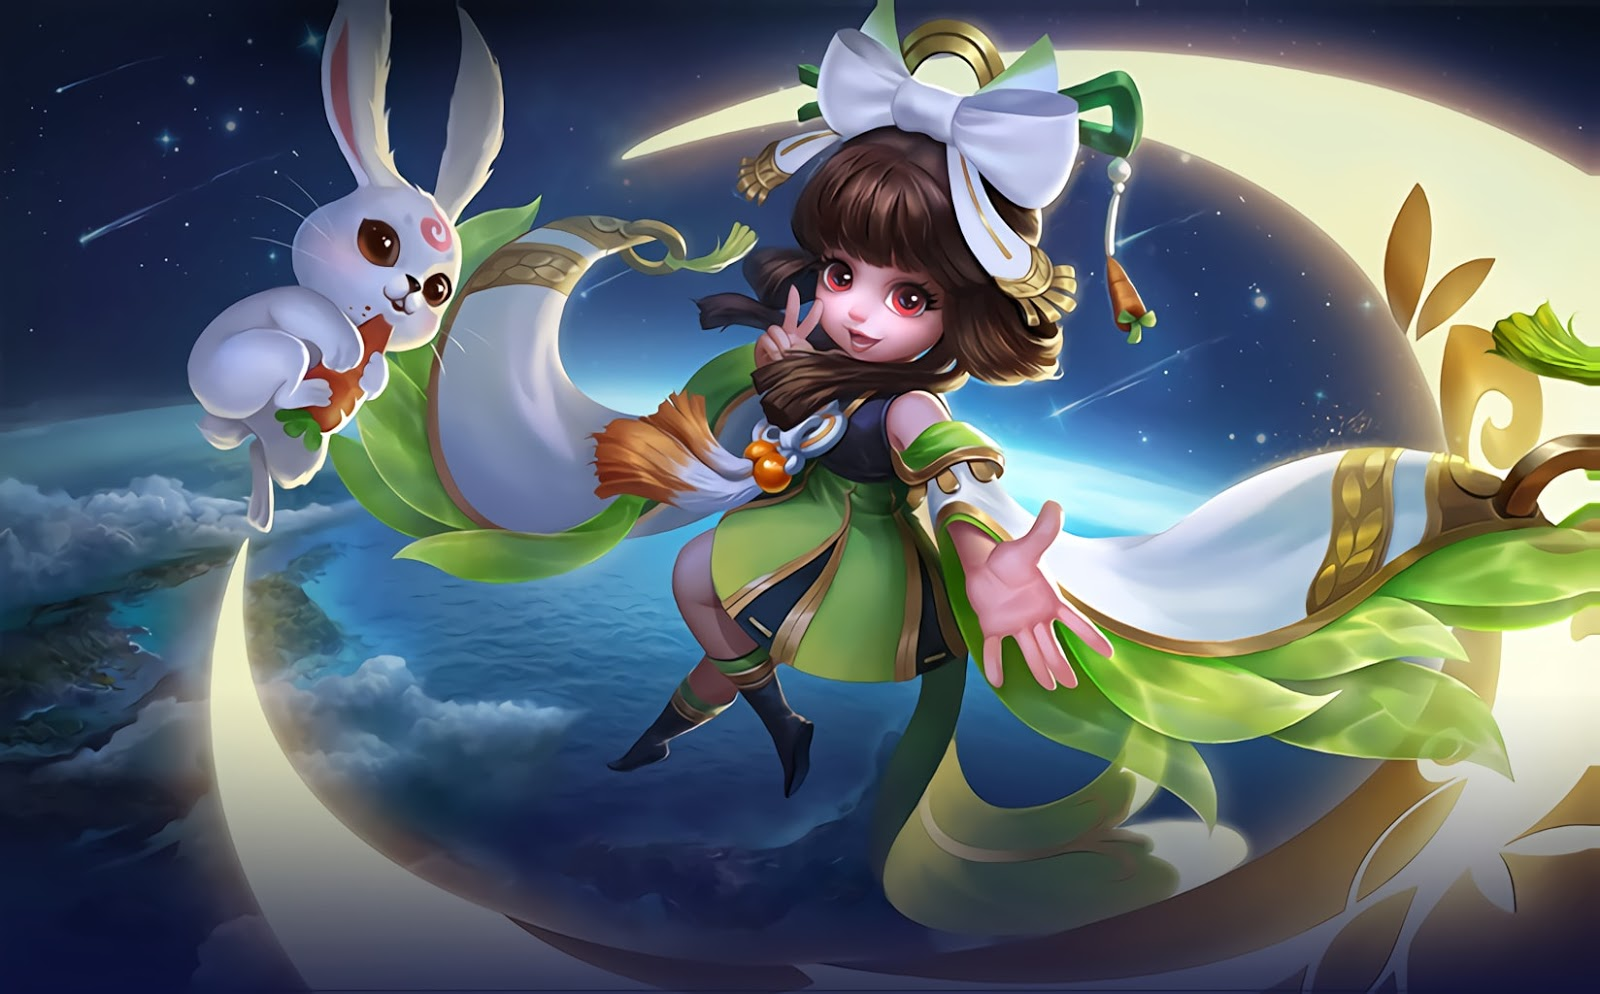 Wallpaper Chang'e Moon Palace Immortal Skin Mobile Legends Full HD for PC